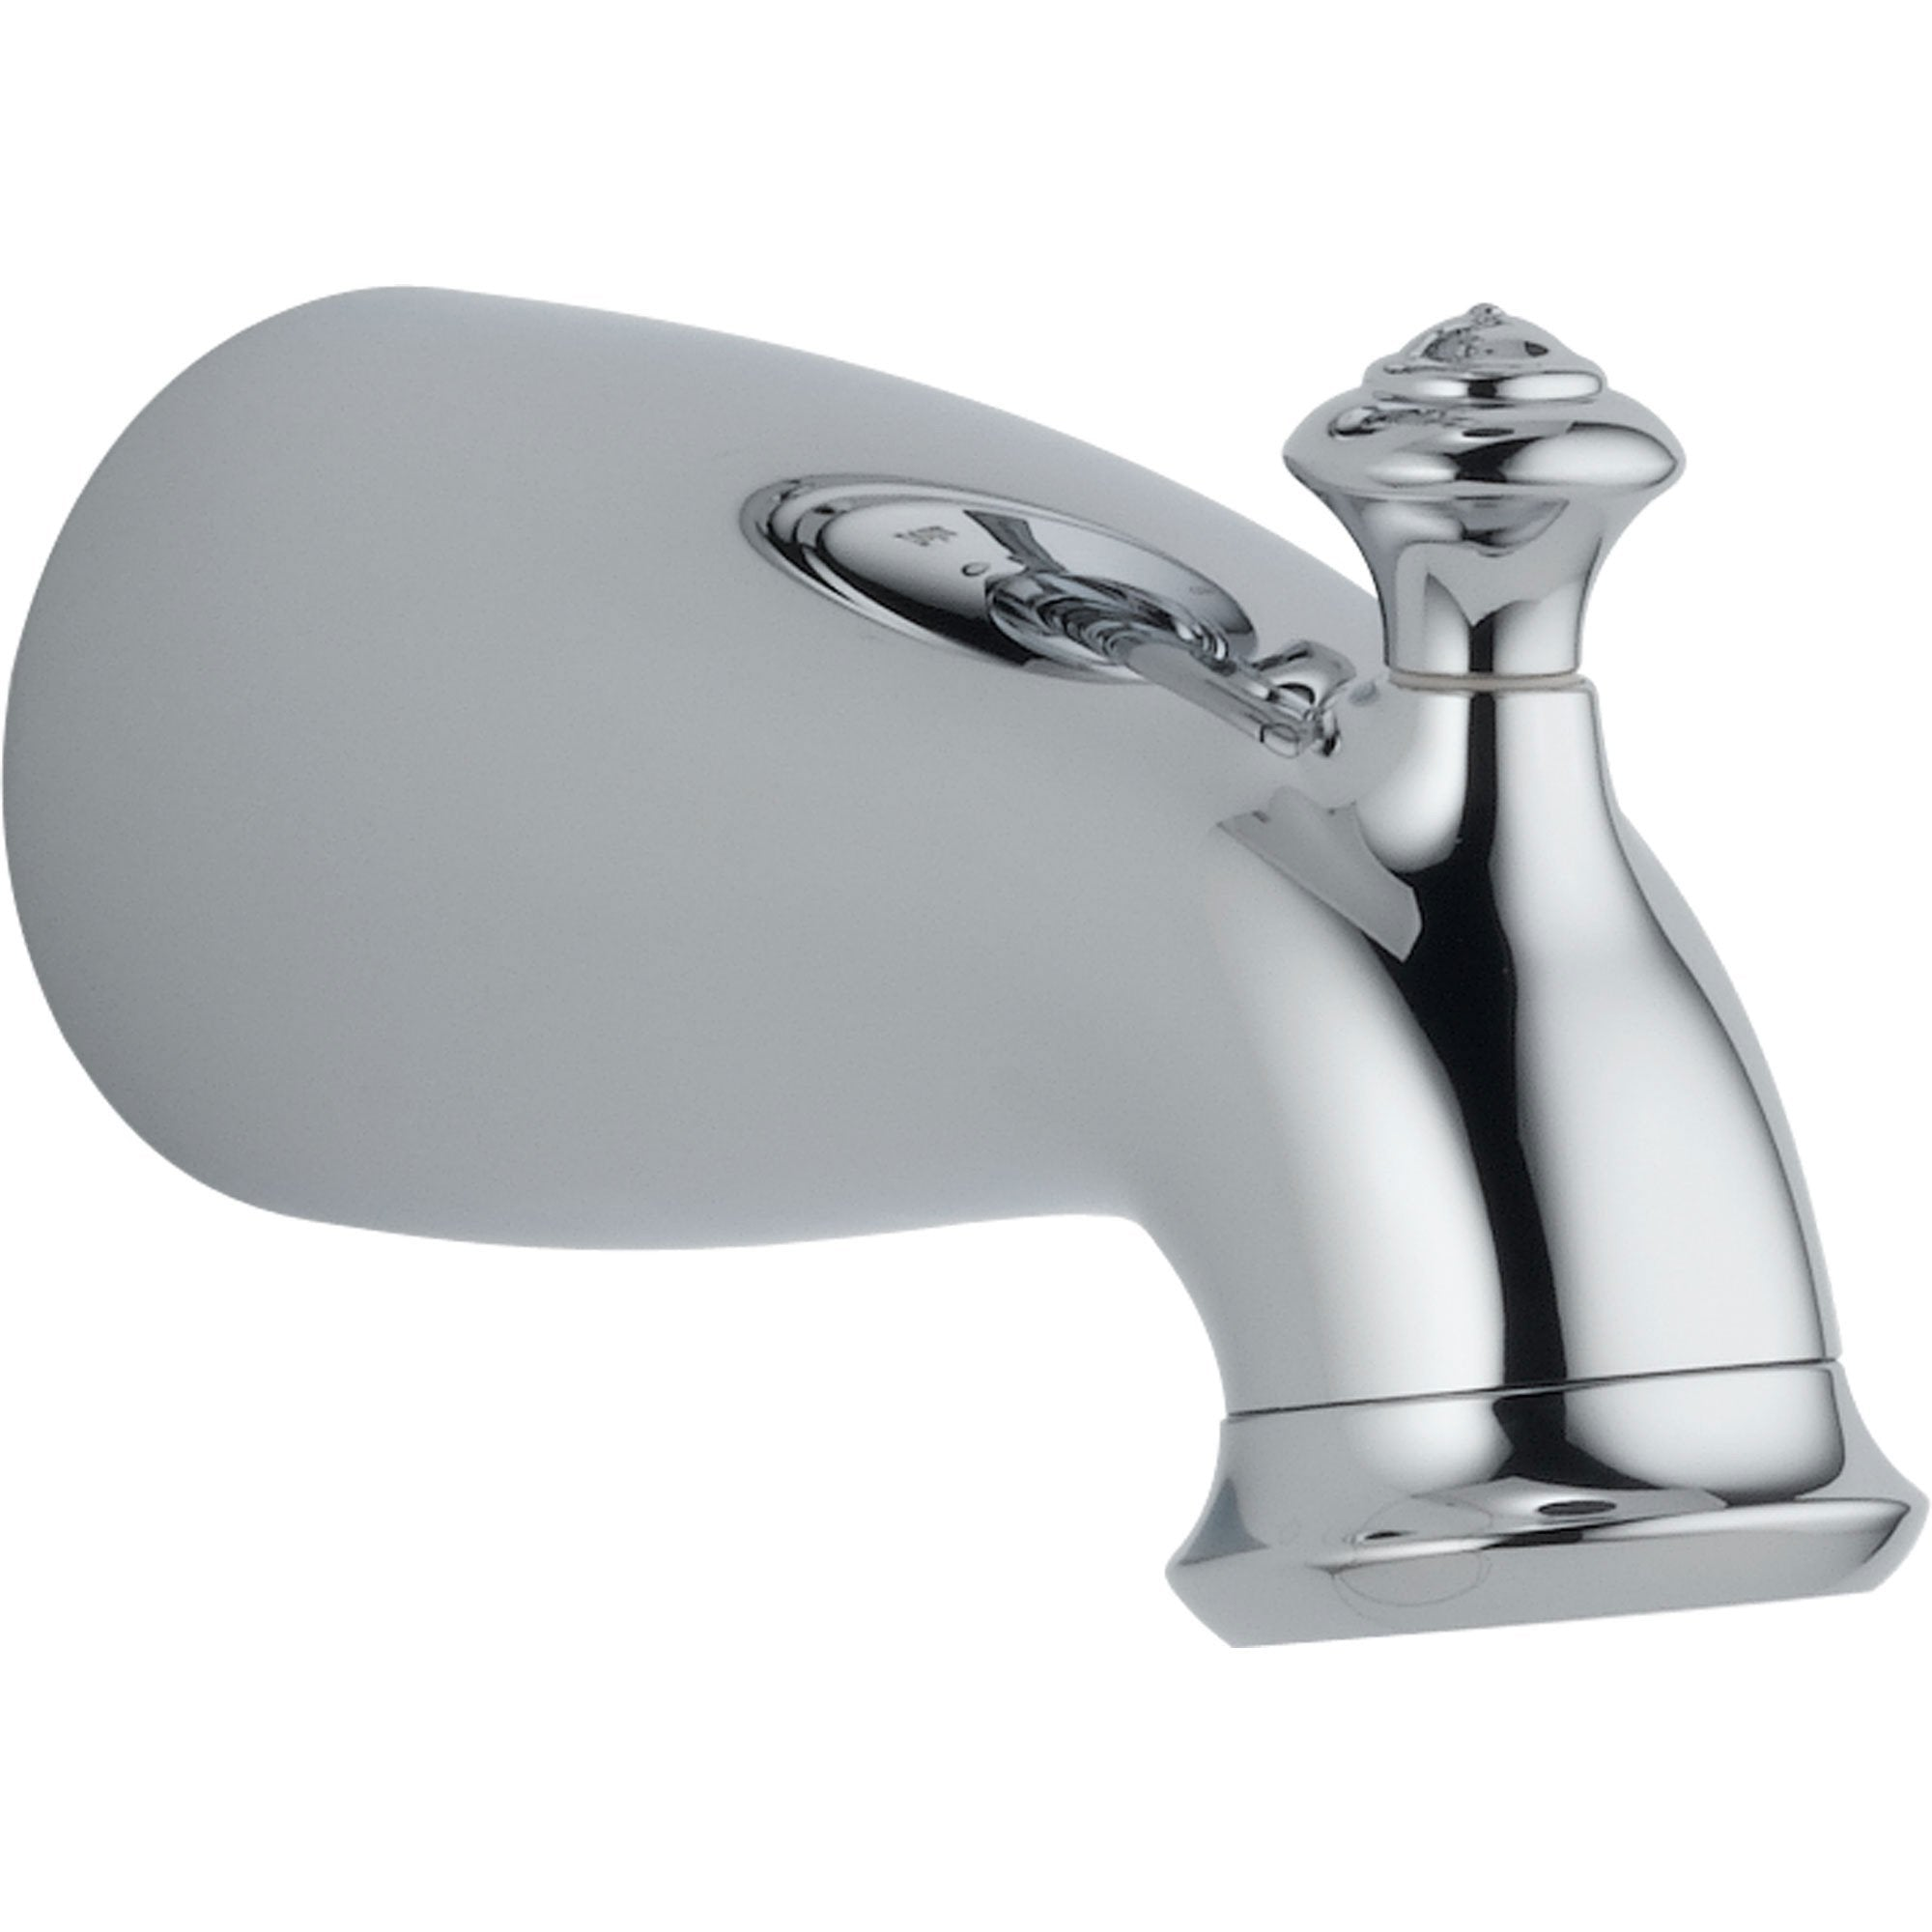 Delta Leland 6-1/2 in. Pull-Up Diverter Tub Spout in Chrome 588641